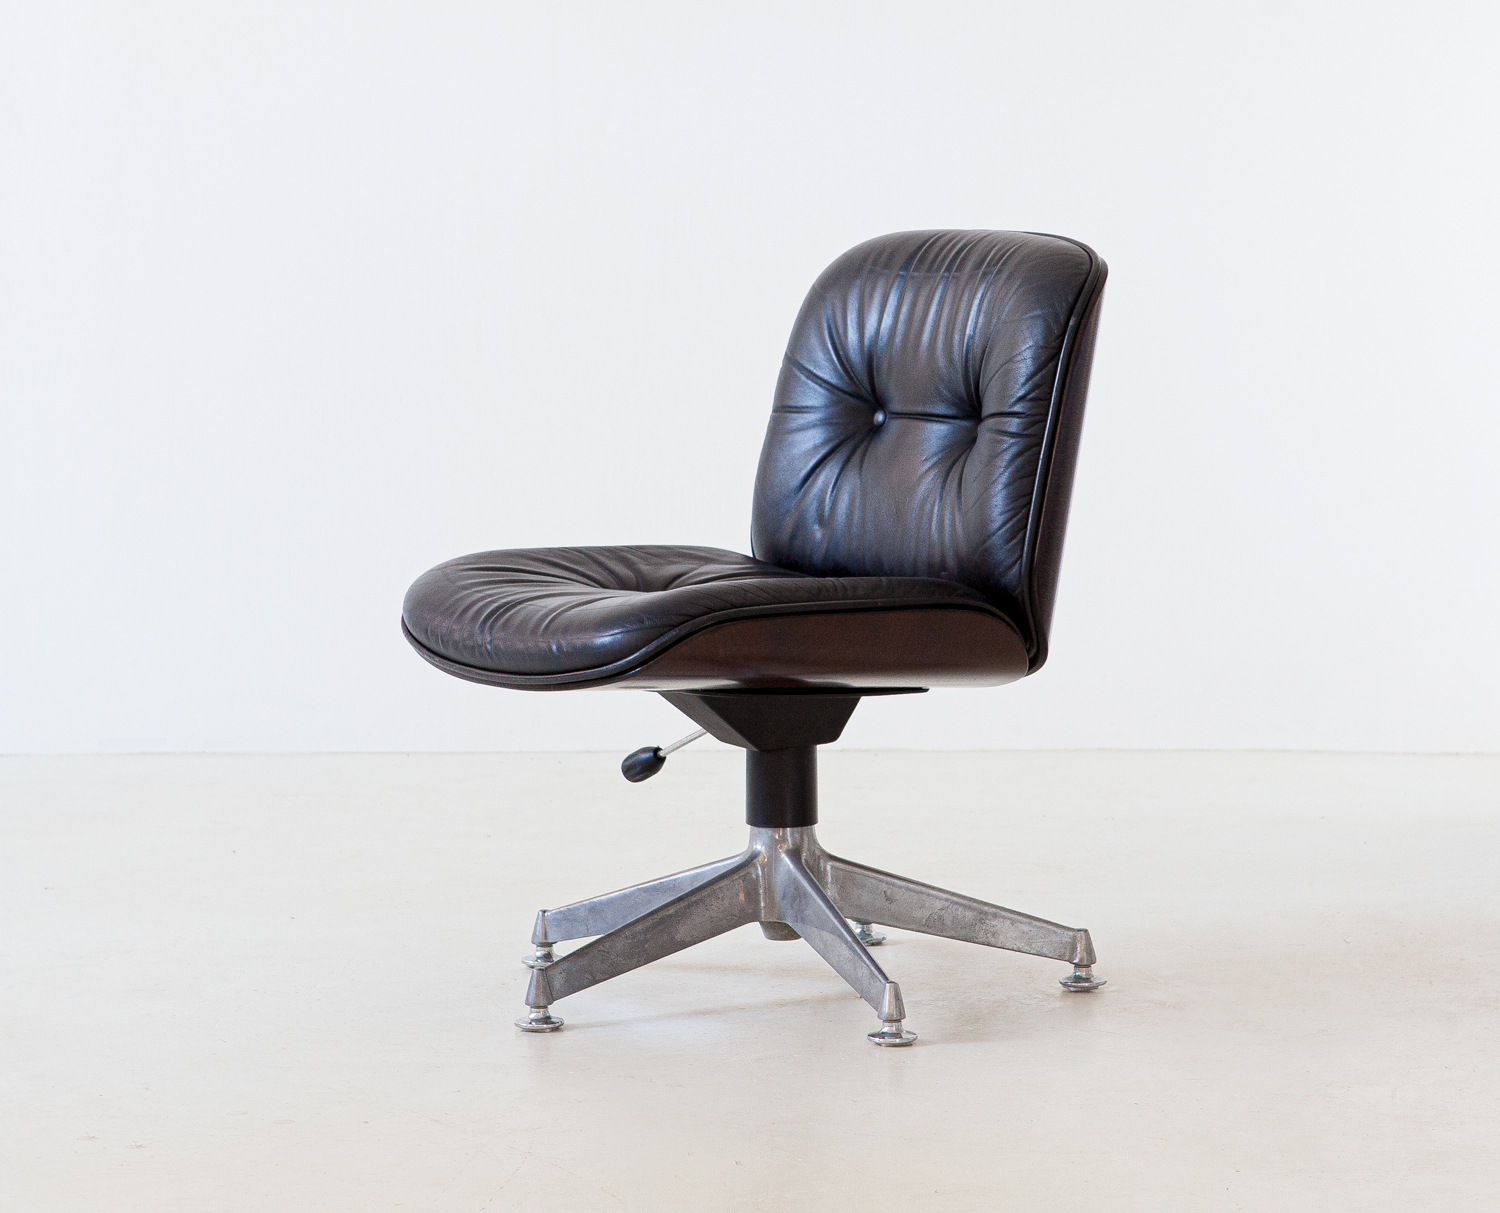 italian-leather-swivel-chair-by-ico-parisi-for-mim-1-se326